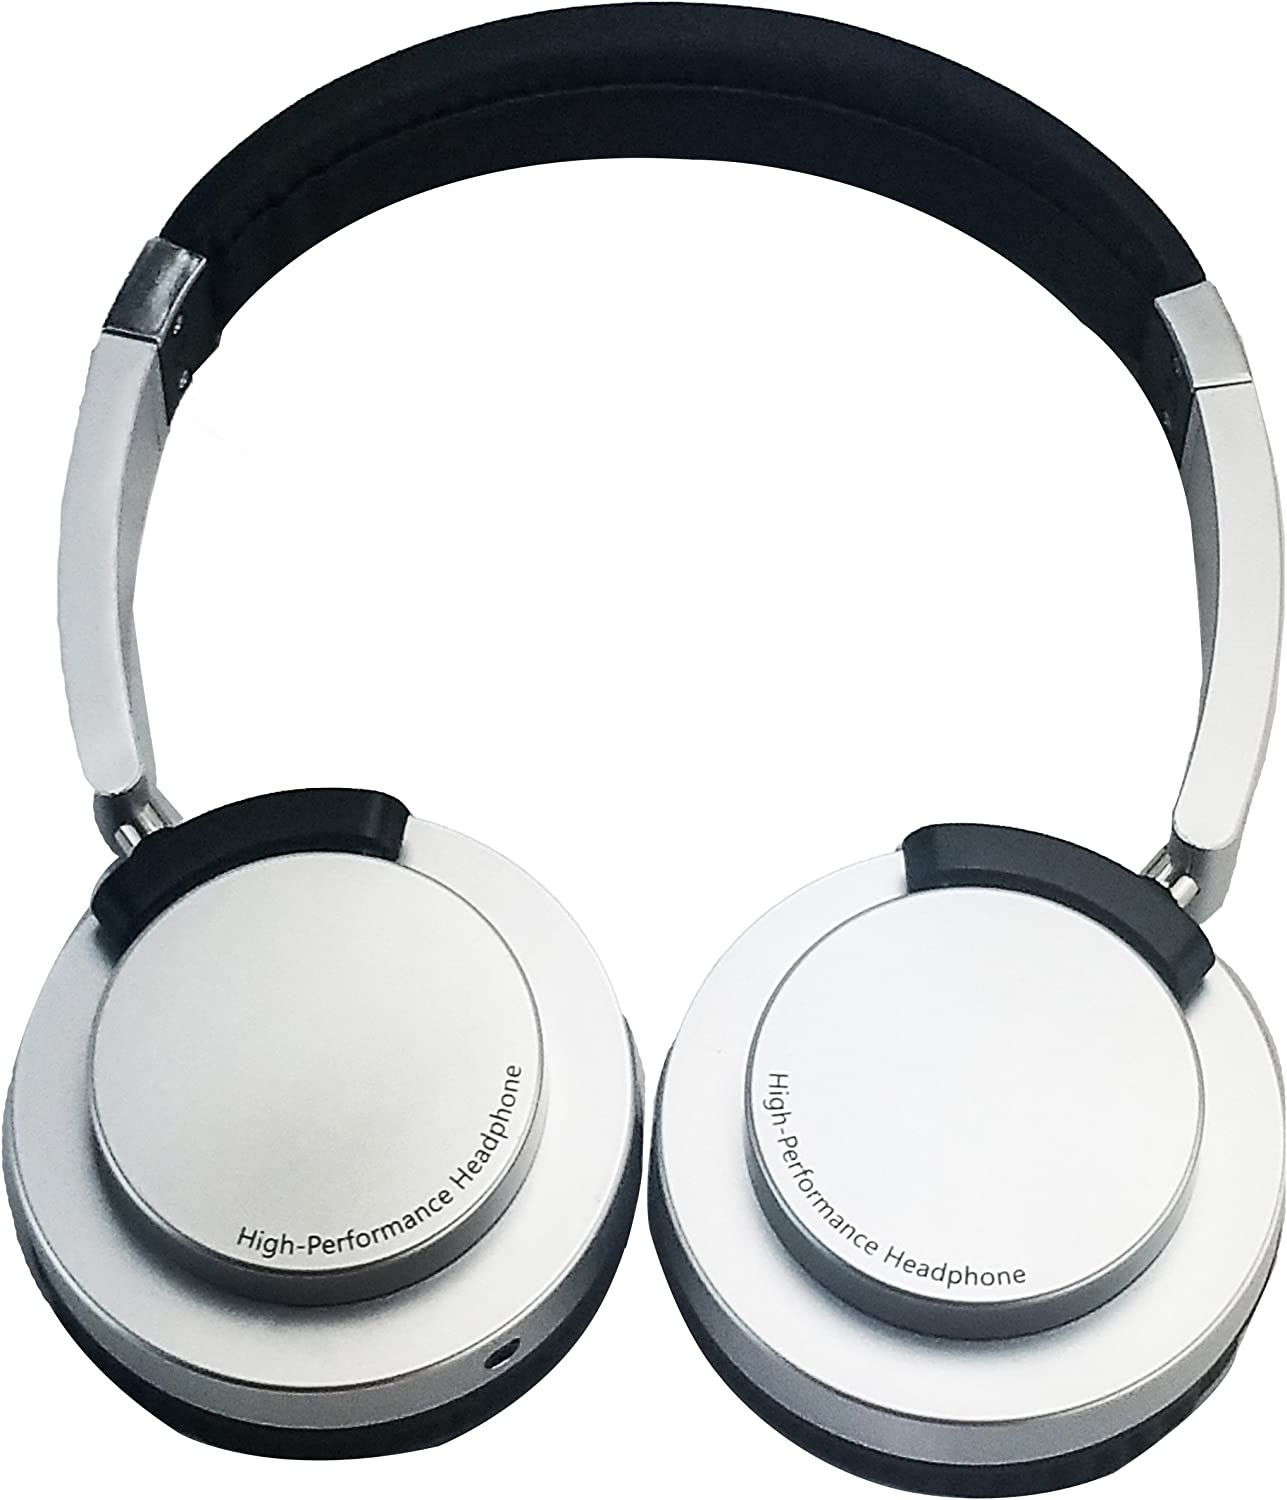 Quality sound with modern look Nady DJH-2000 DJ style Headphones soft leather covered ear pads includes coiled 3.5mm connecting cable